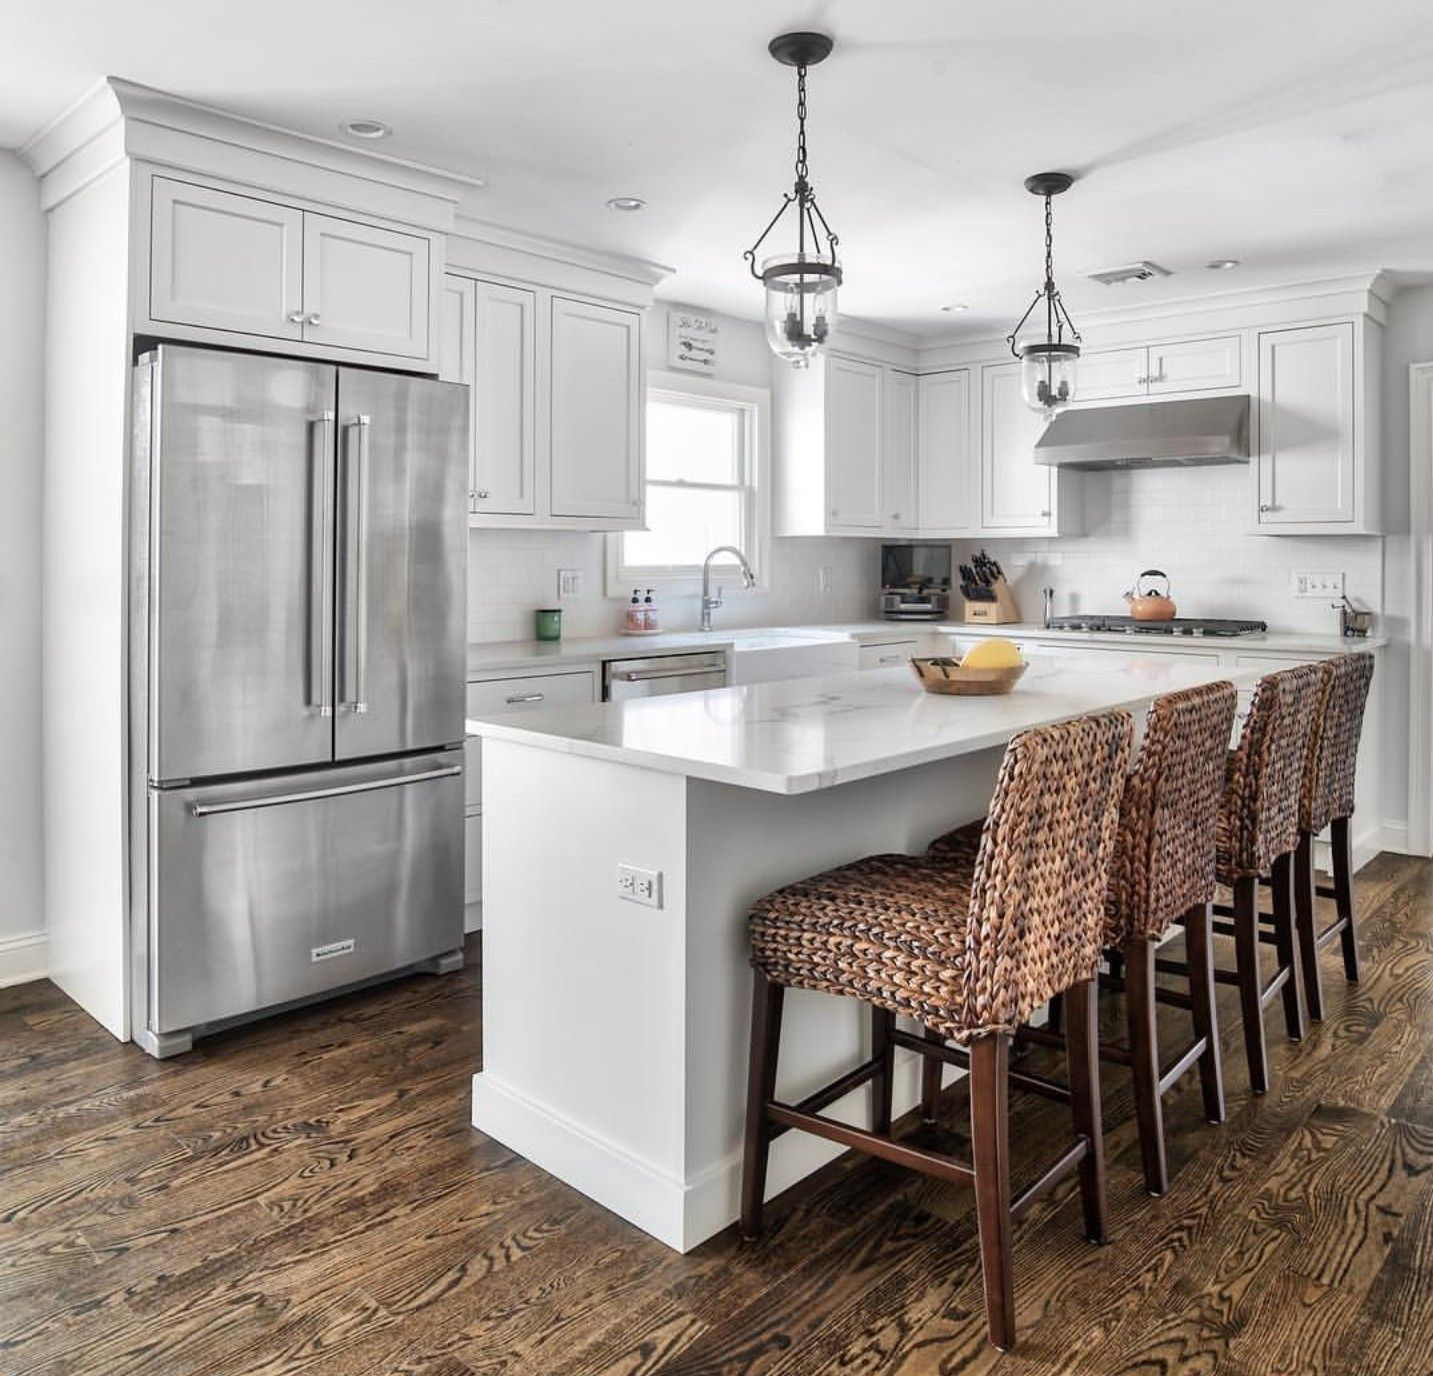 white l shape kitchen with island in 2019 home decor kitchen galley kitchen design kitchen on kitchen island ideas v shape id=85965